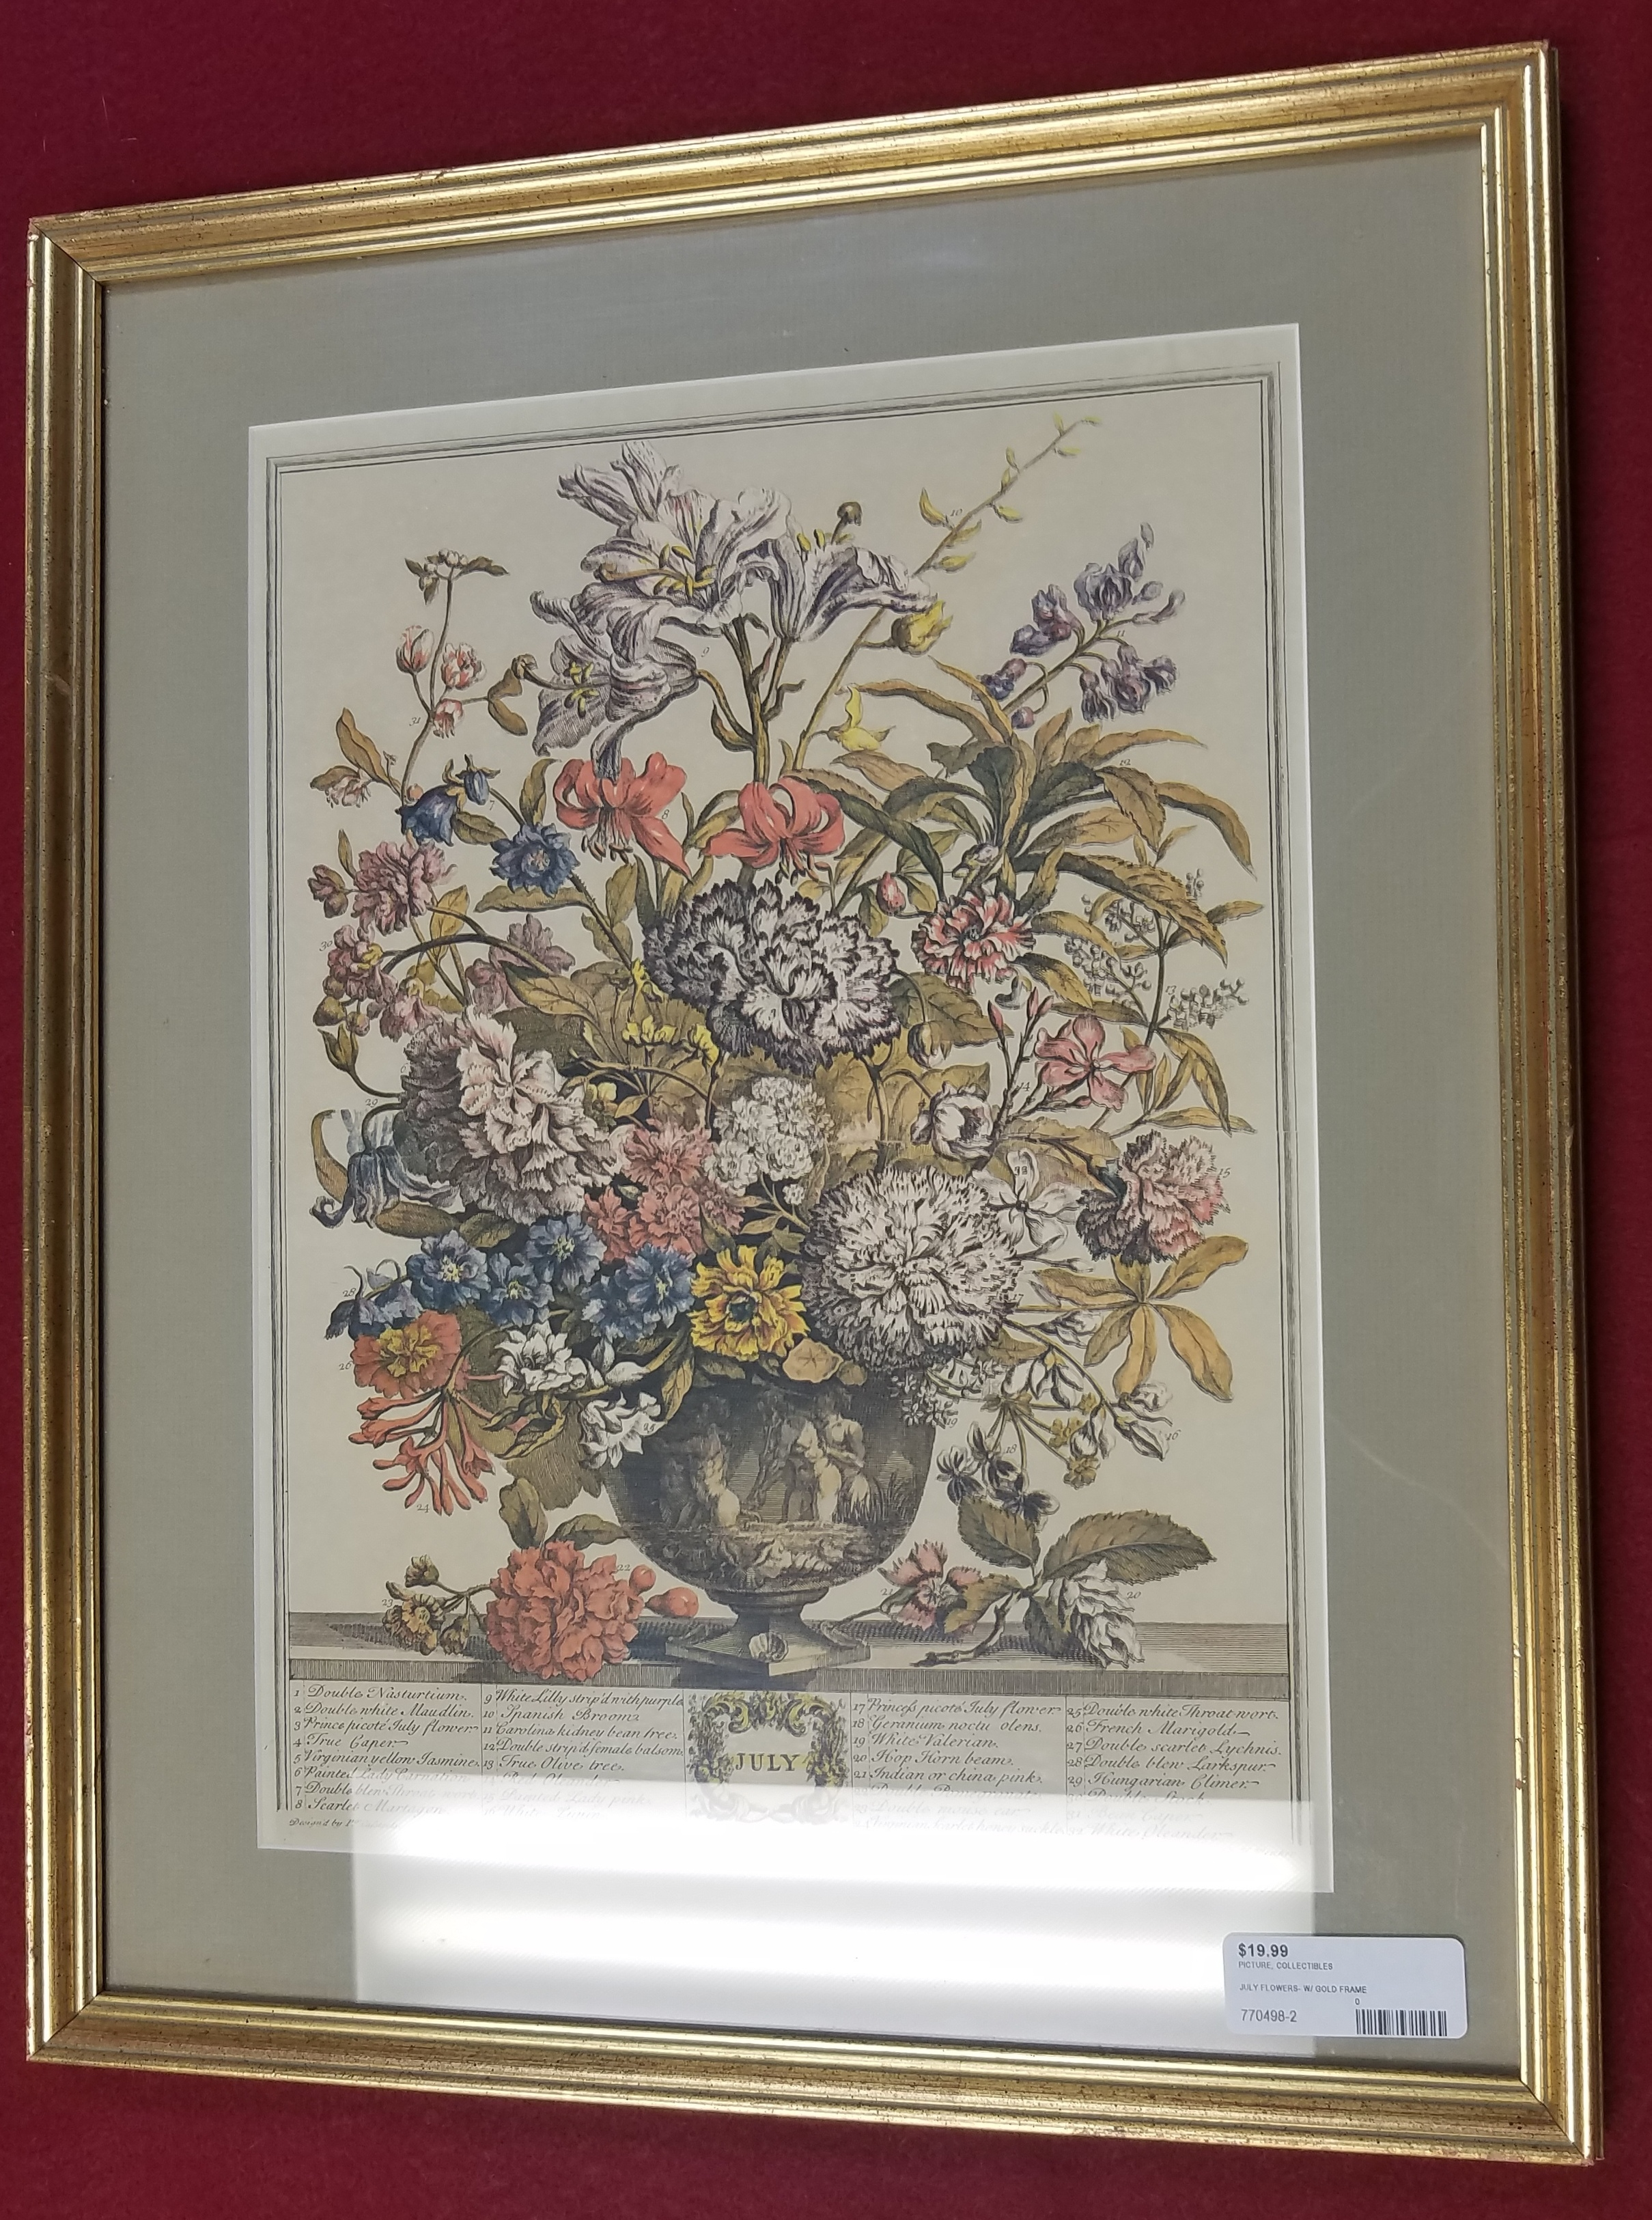 ART/COLLECTIBLES: JULY FLOWERS IN GOLD FRAME